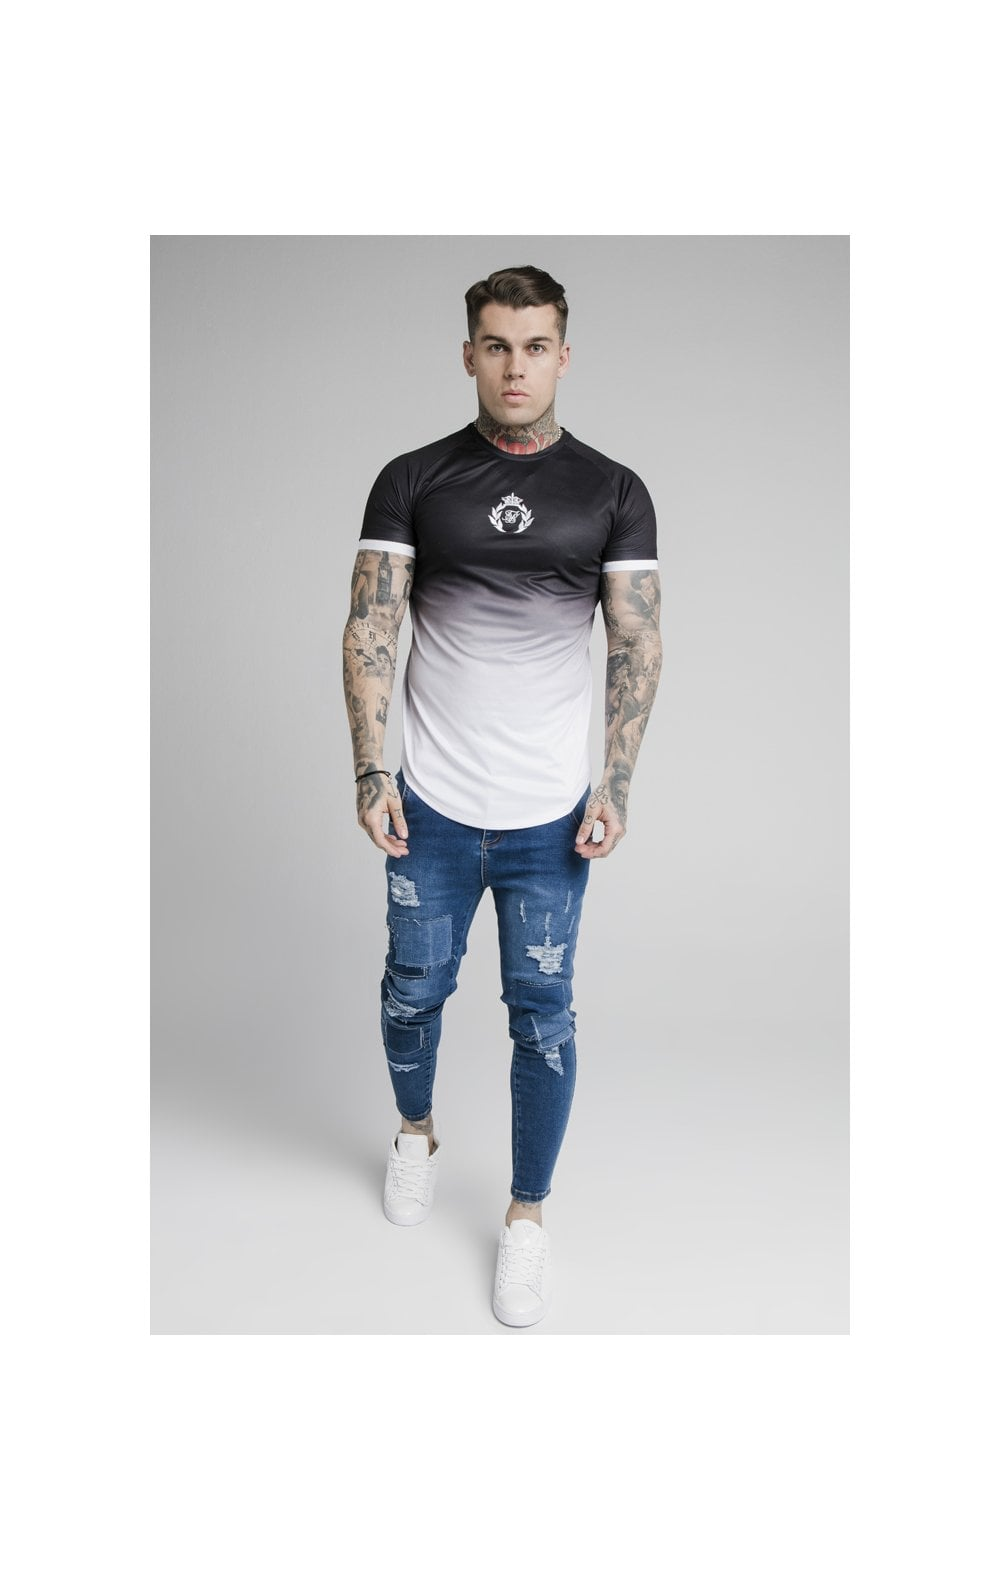 Load image into Gallery viewer, SikSilk S/S Prestige Fade Inset Tech Tee - Black & White (3)